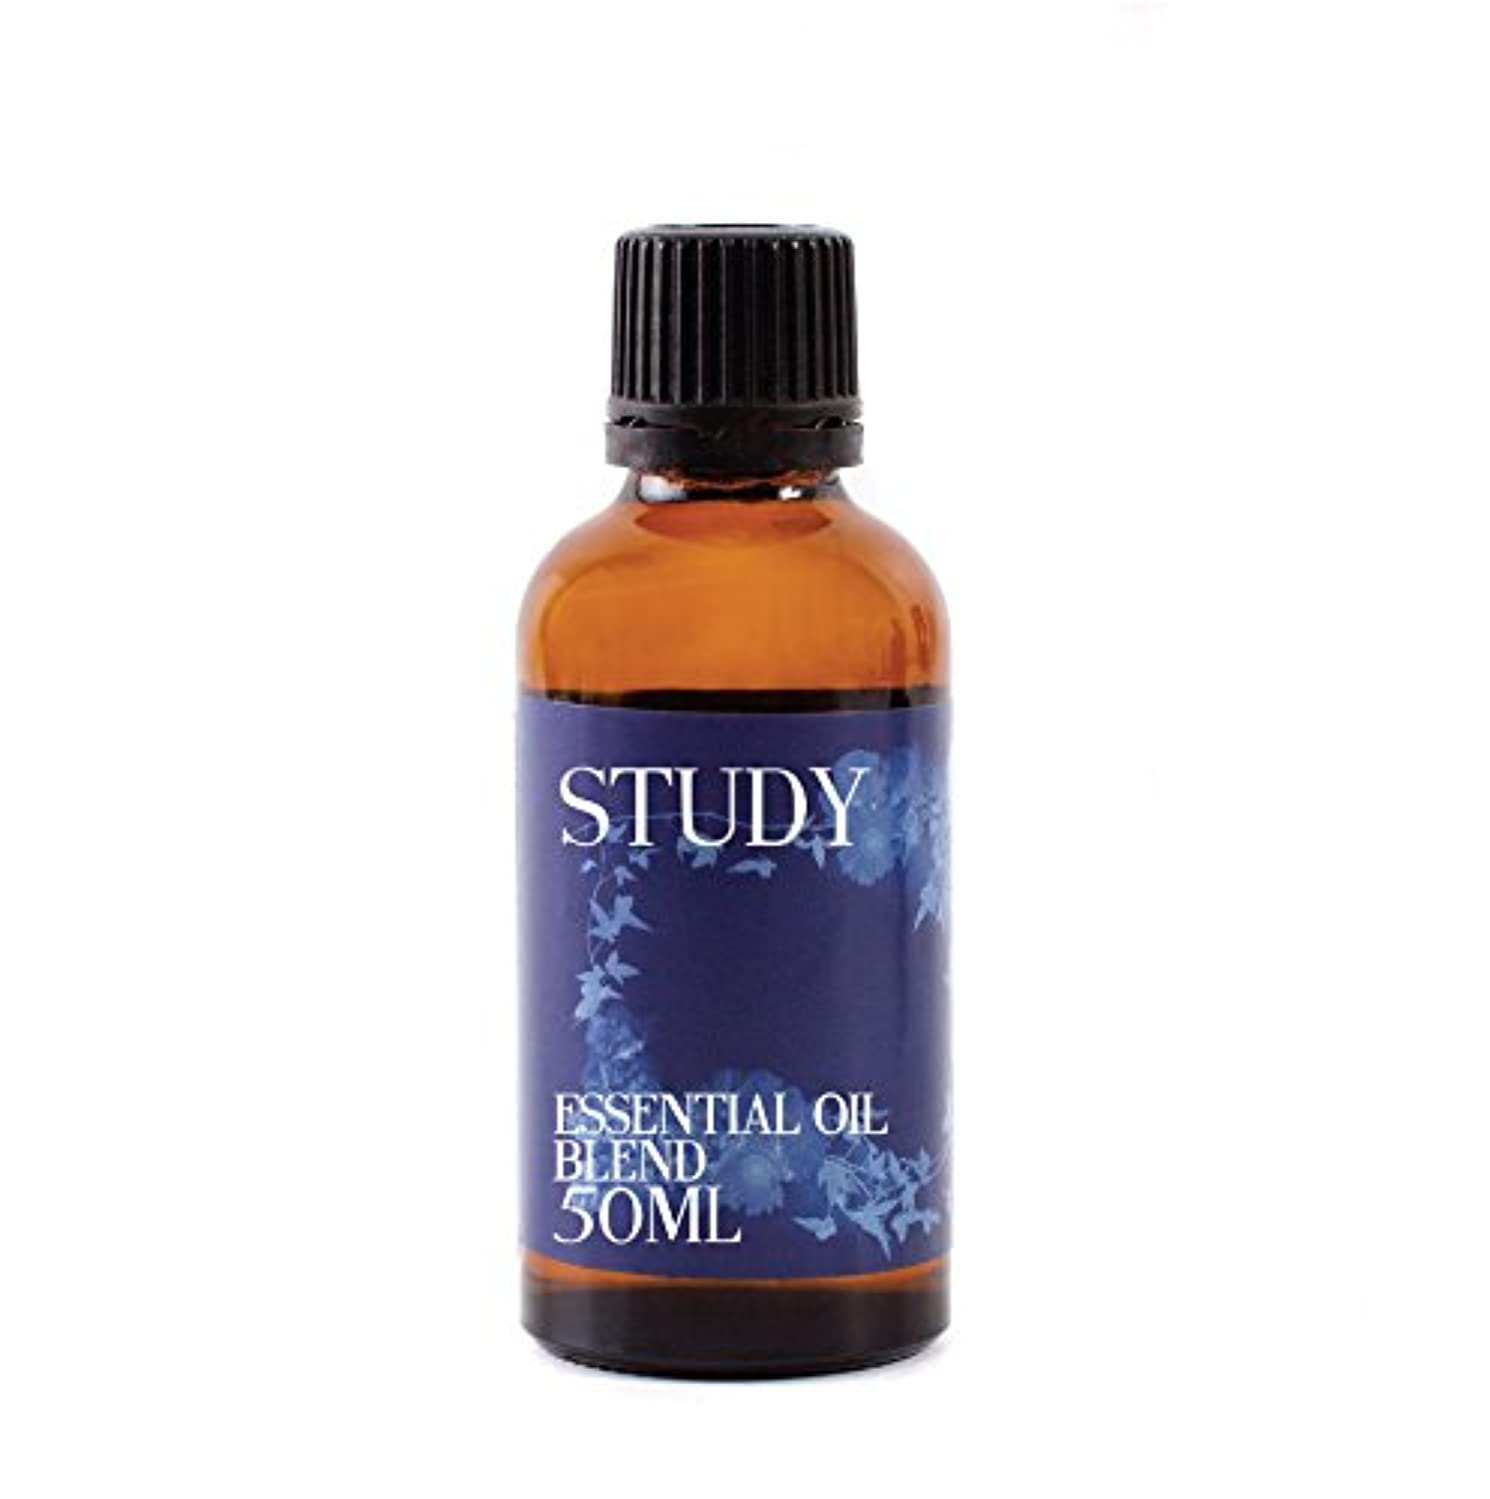 Mystic Moments | Study Essential Oil Blend - 50ml - 100% Pure